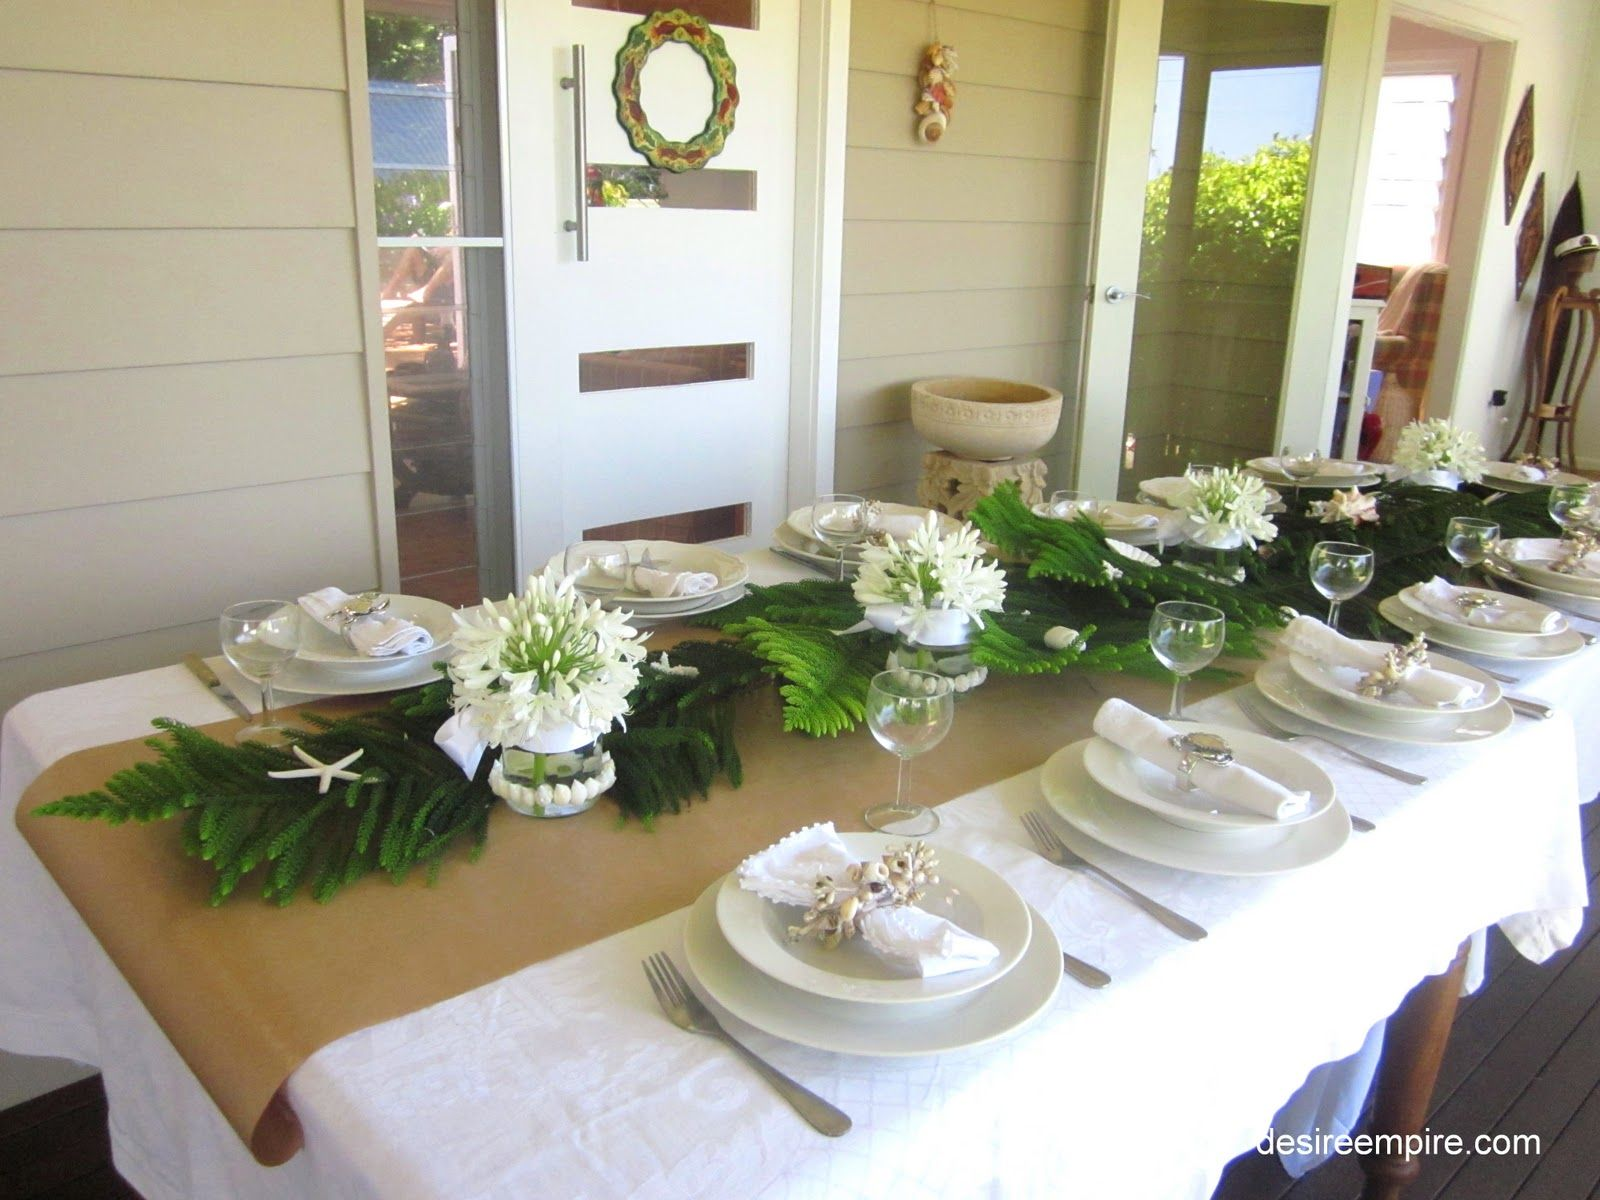 Whitecoastaltablescape11g 16001200 pixels christmas coastal table in white and on an ikea budget junglespirit Image collections